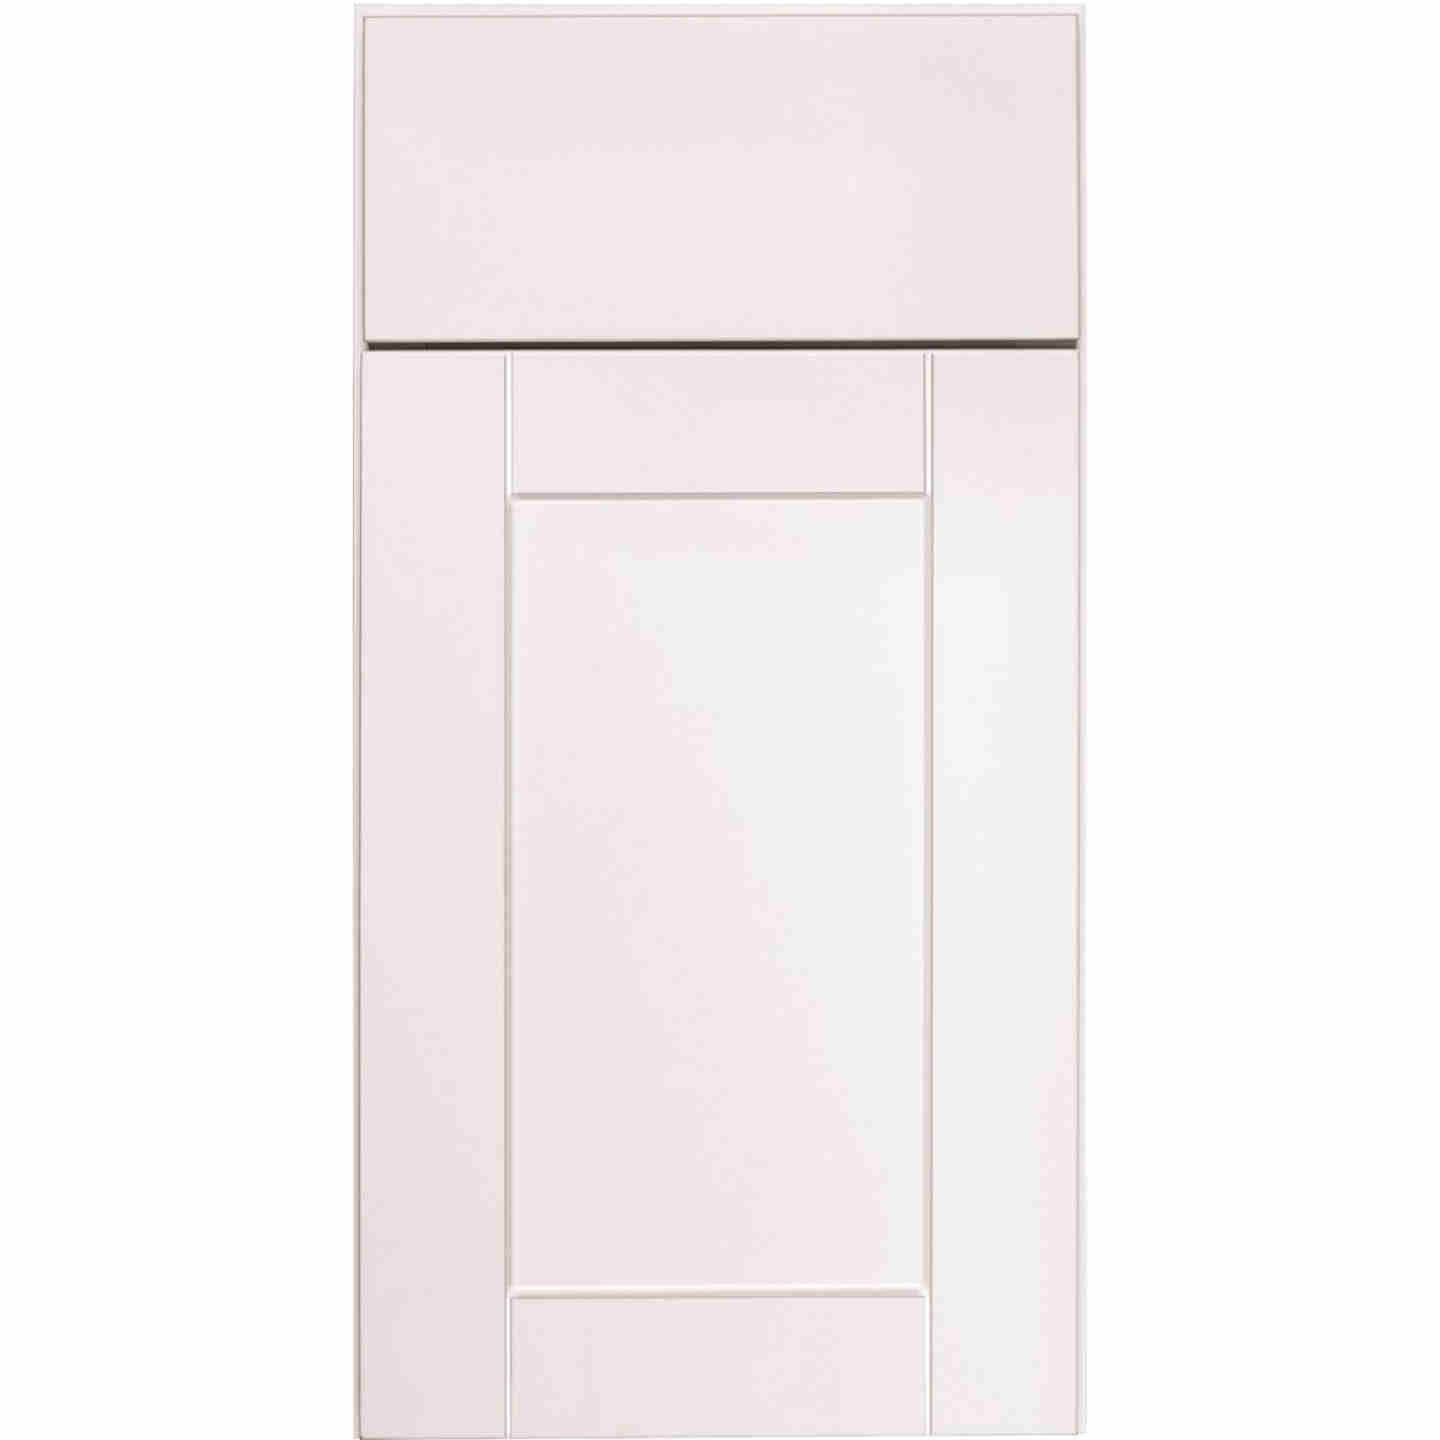 Continental Cabinets Andover Shaker 24 In. W x 34 In. H x 24 In. D White Thermofoil Base Kitchen Cabinet Image 3